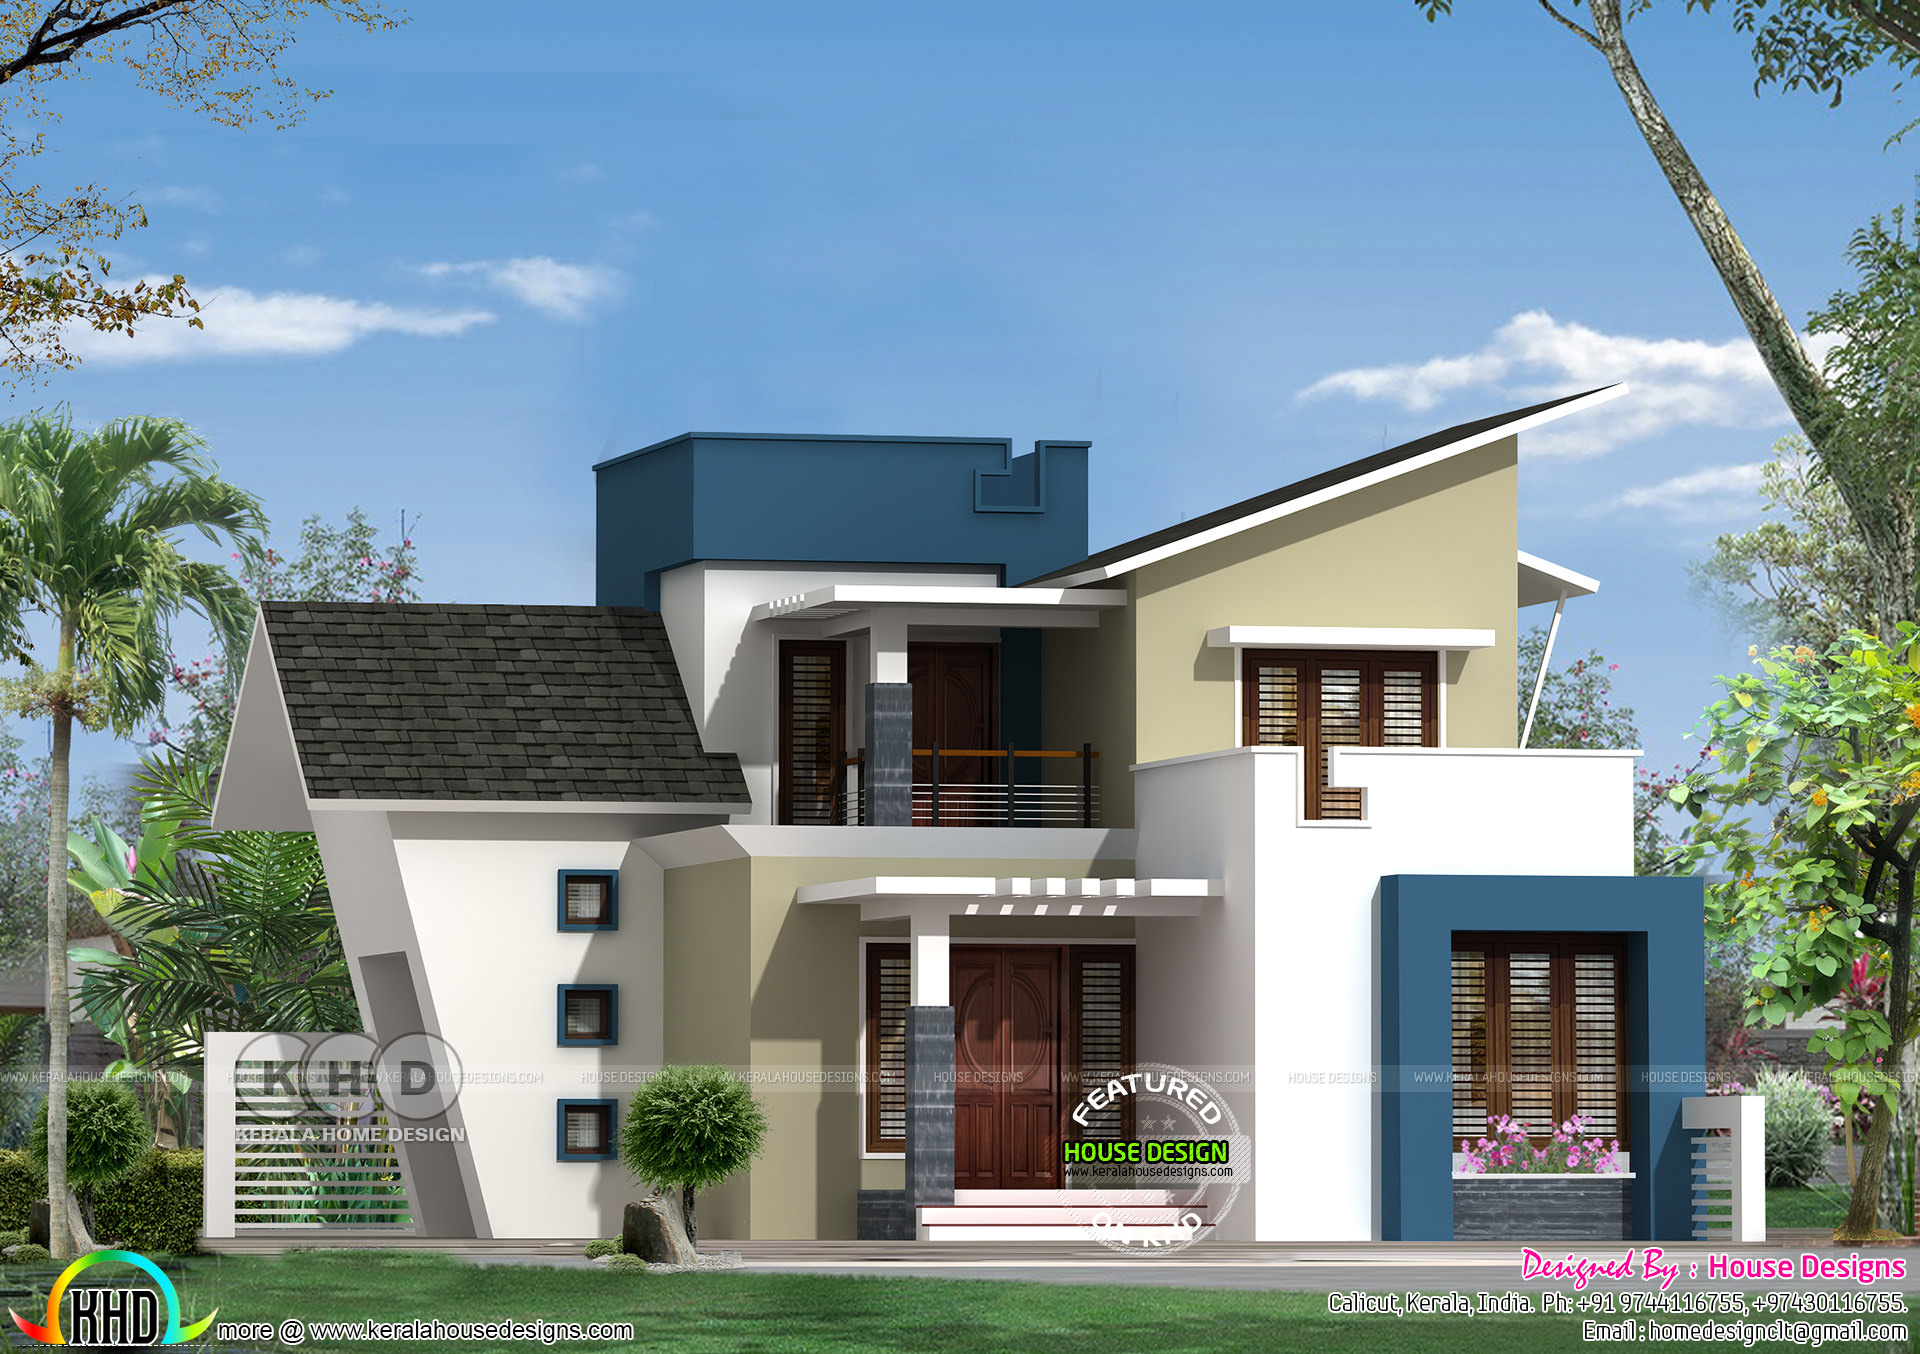 New home design by 39 house designs 39 from calicut kerala for New home designs pictures